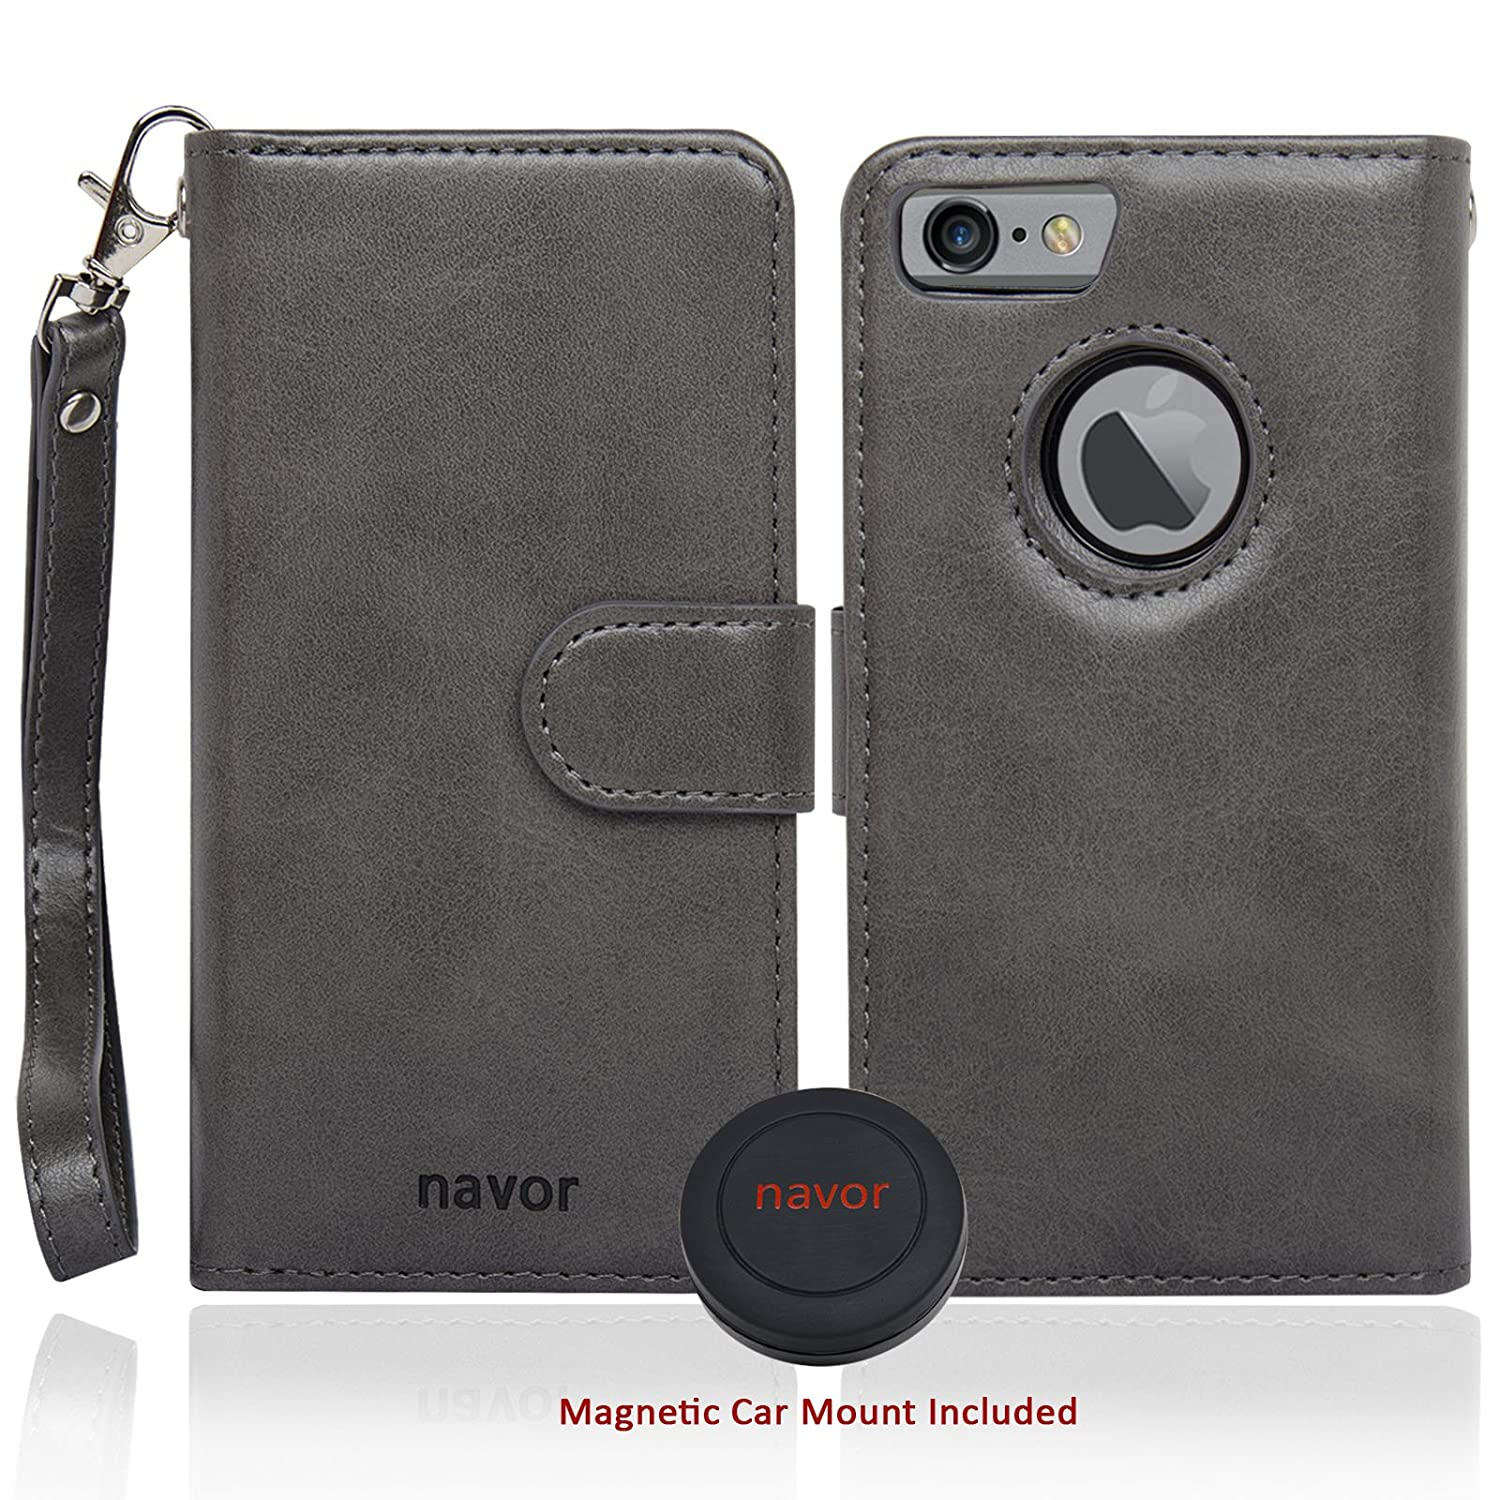 JOOT-3L navor Magnetic Detachable Wallet Case and Universal Car Mount RFID Protection 8 Card Pockets IP73LBK 3 Money Pockets Compatible for iPhone 7 /& 8-4.7 Inch - Black